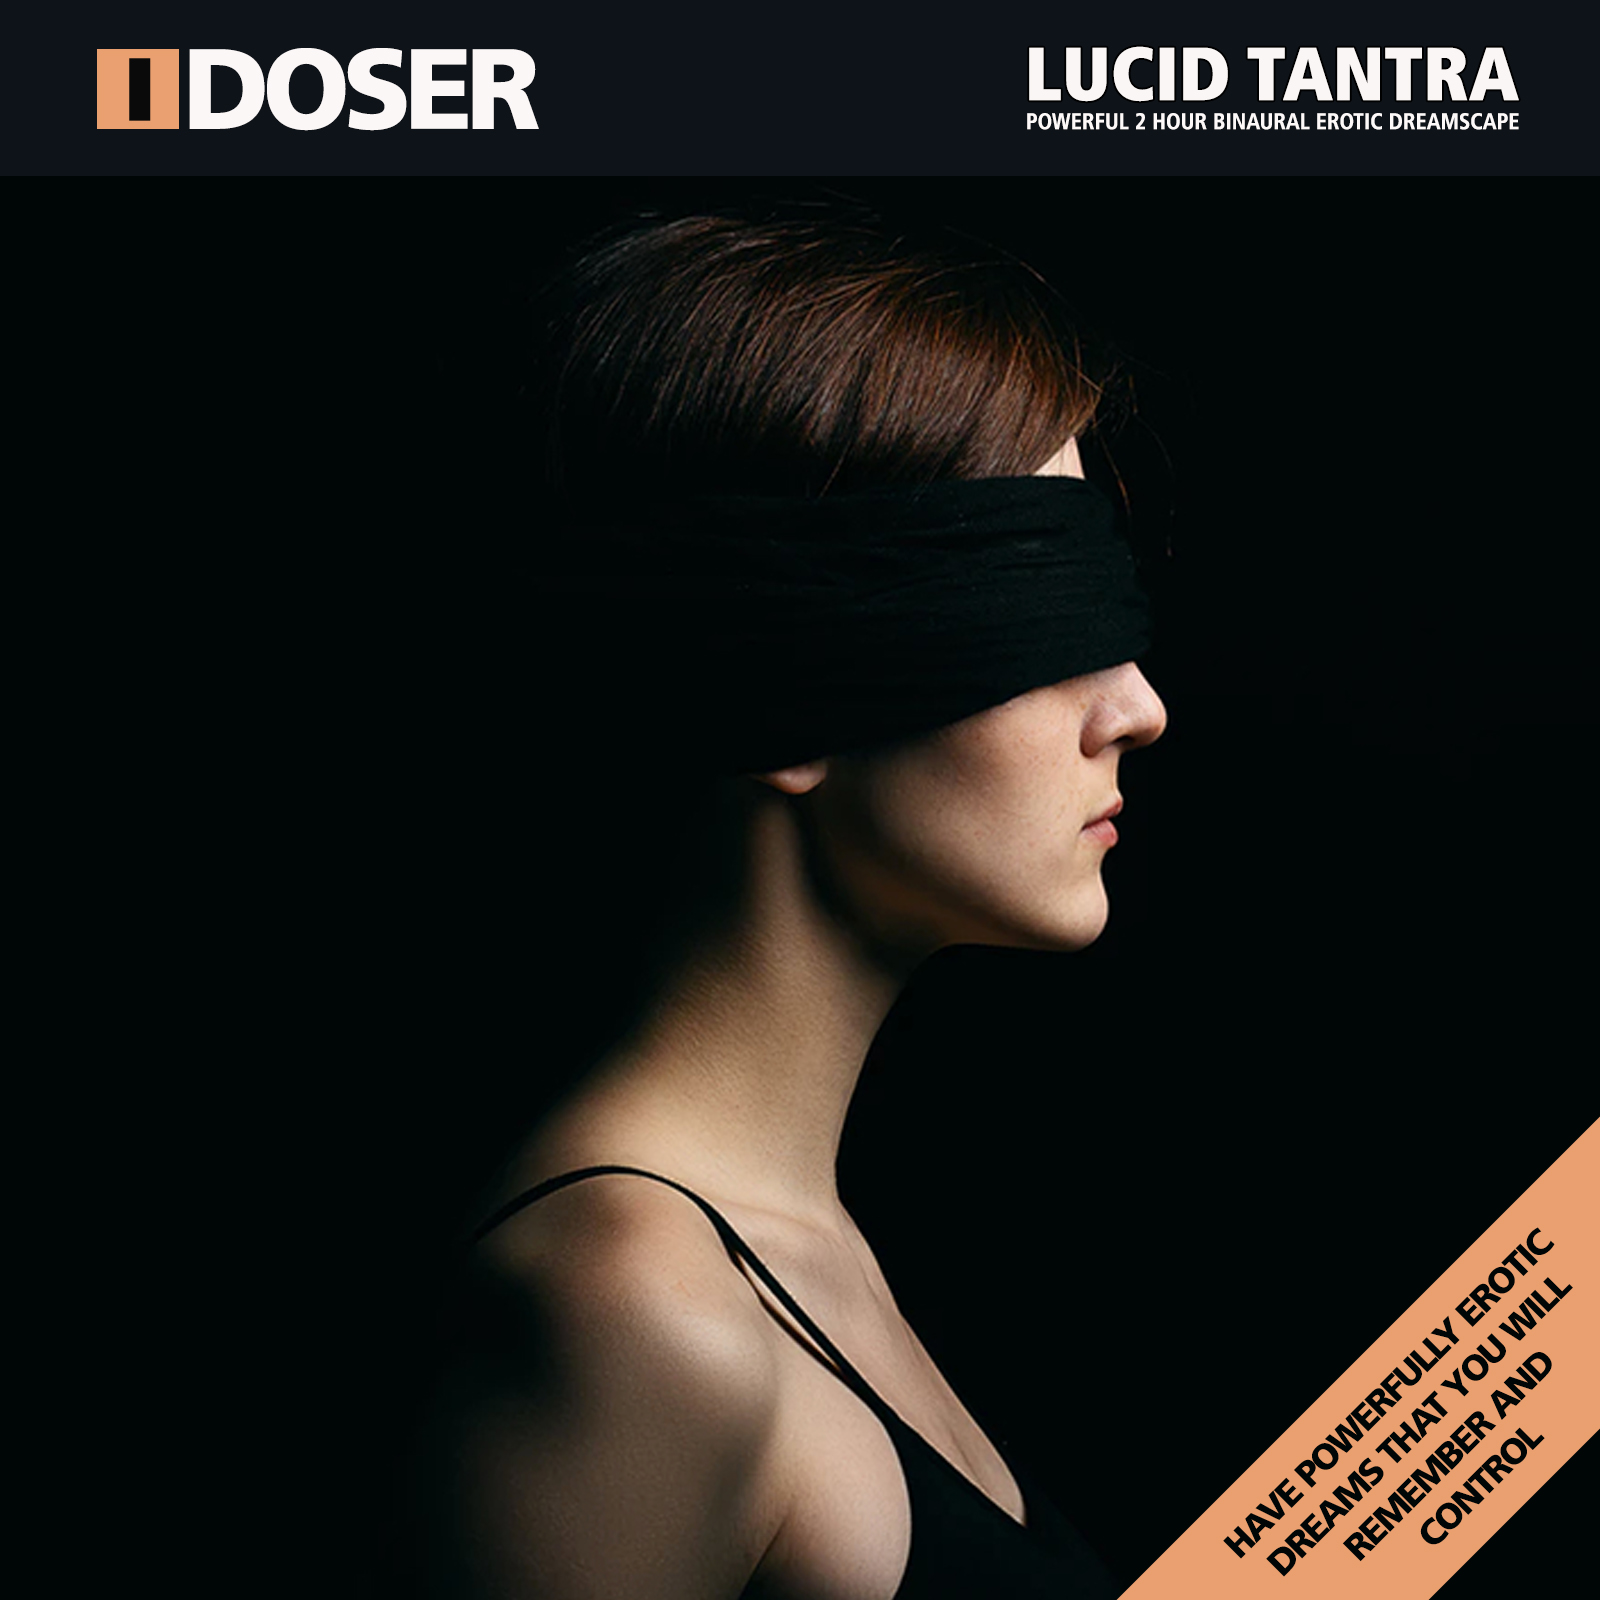 Lucid Tantra